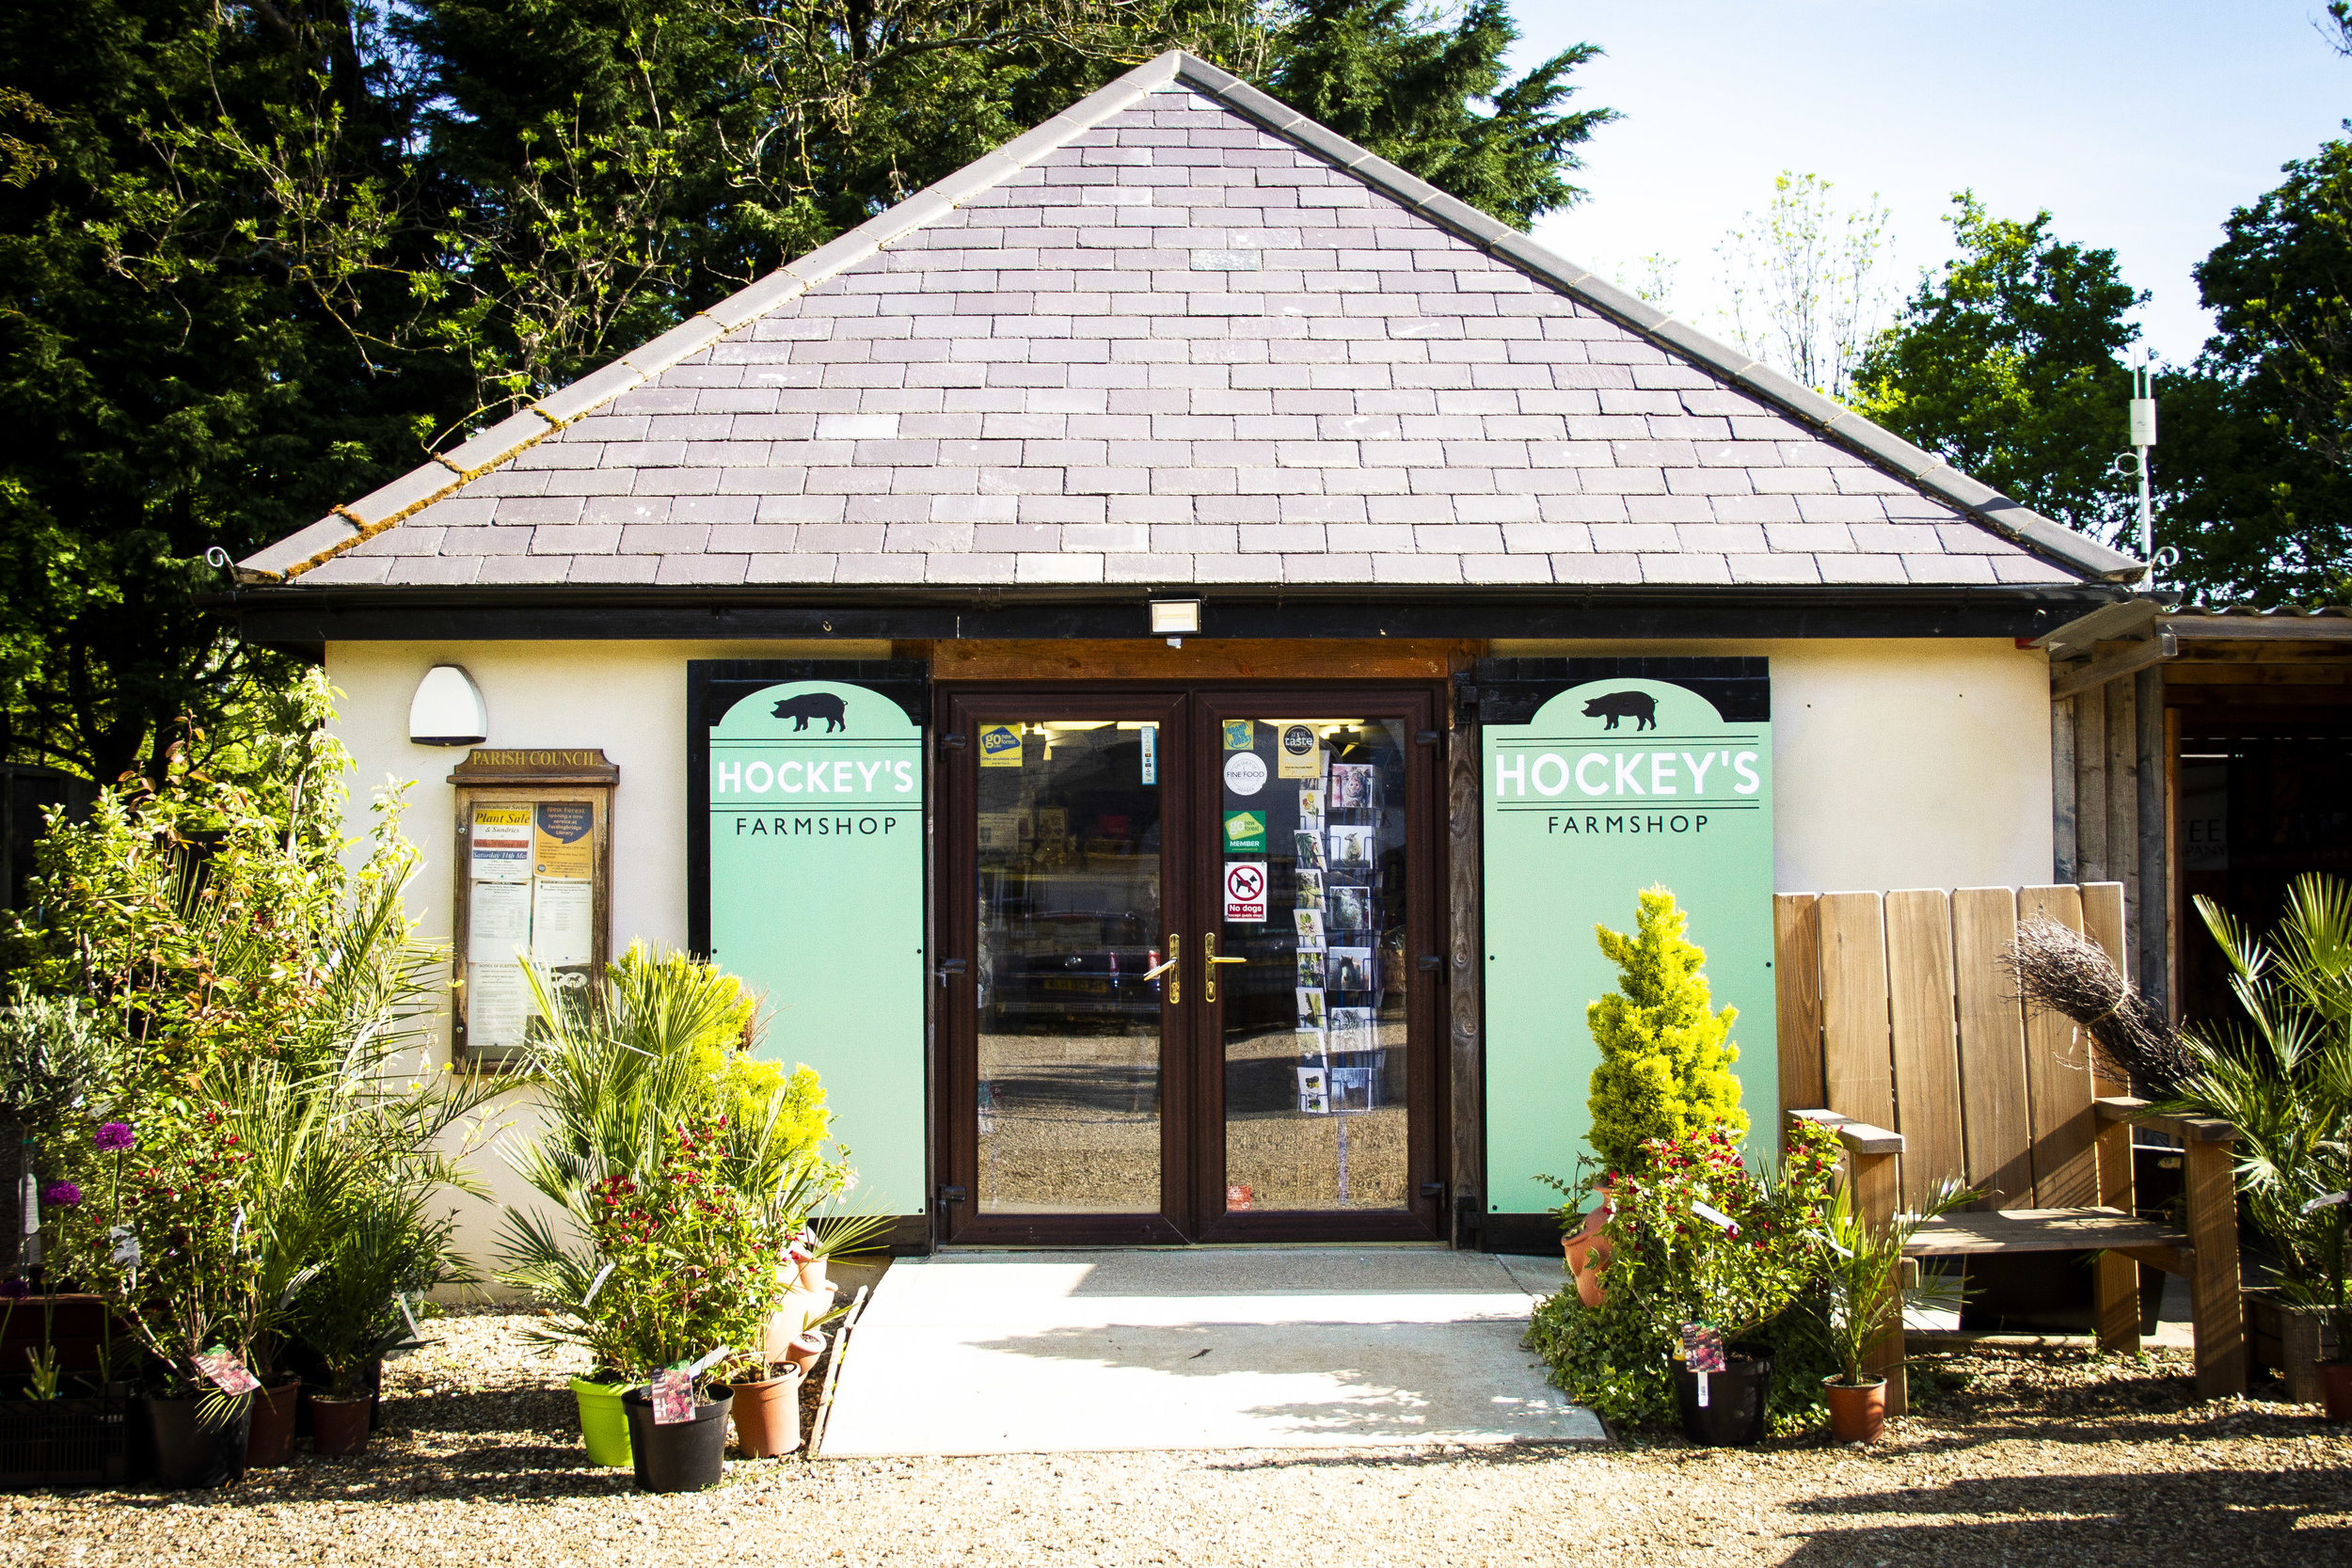 Welcome to Hockey's - Award winning farm shop and café